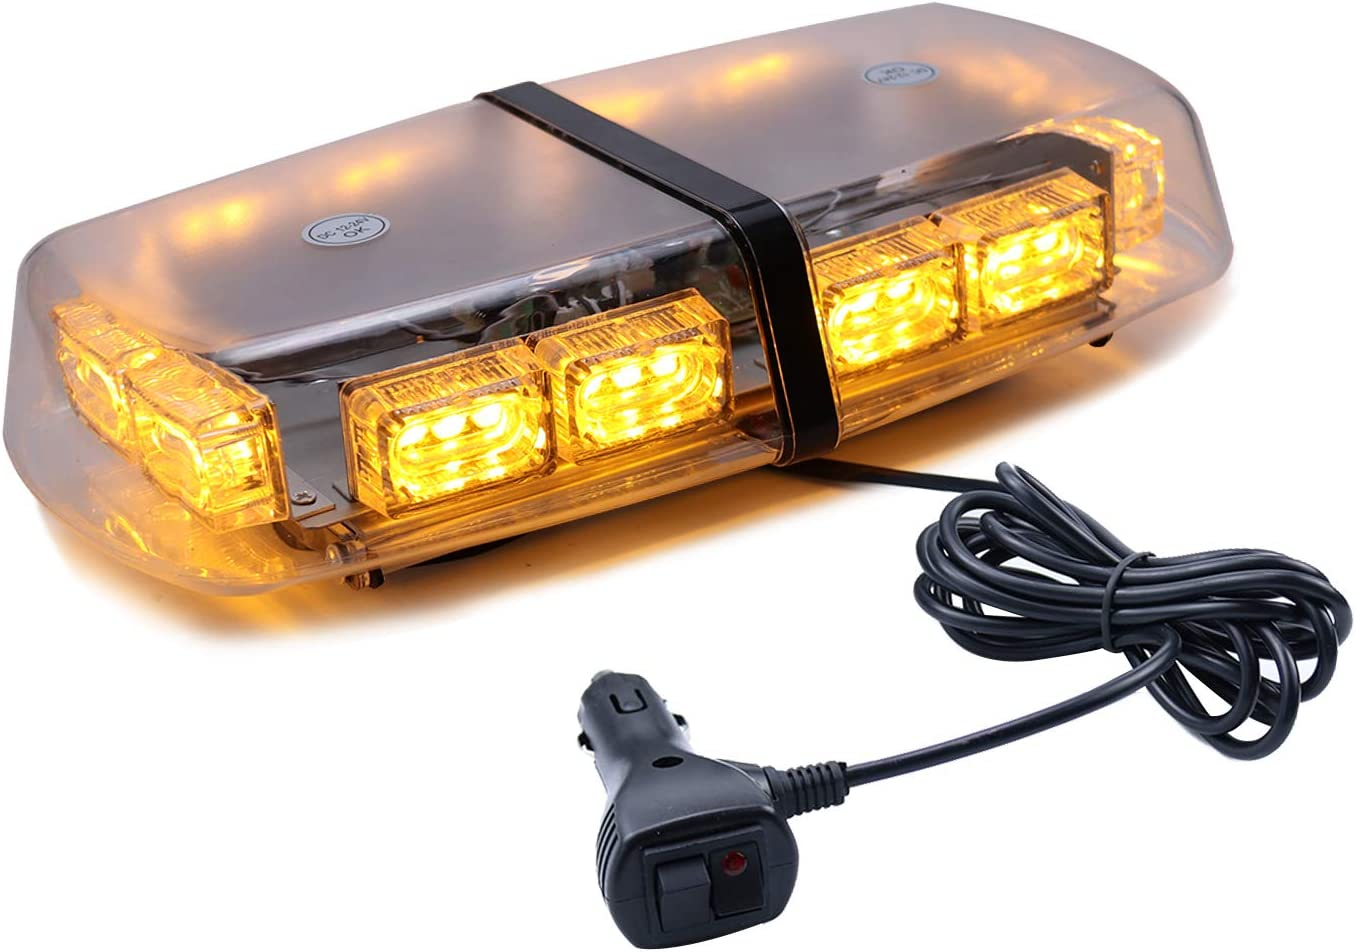 LivTee 16-Modes 36 LED High Intensity Law Enforcement Emergency Hazard Warning LED Mini Bar Strobe Light with Magnetic Base and, Amber Yellow